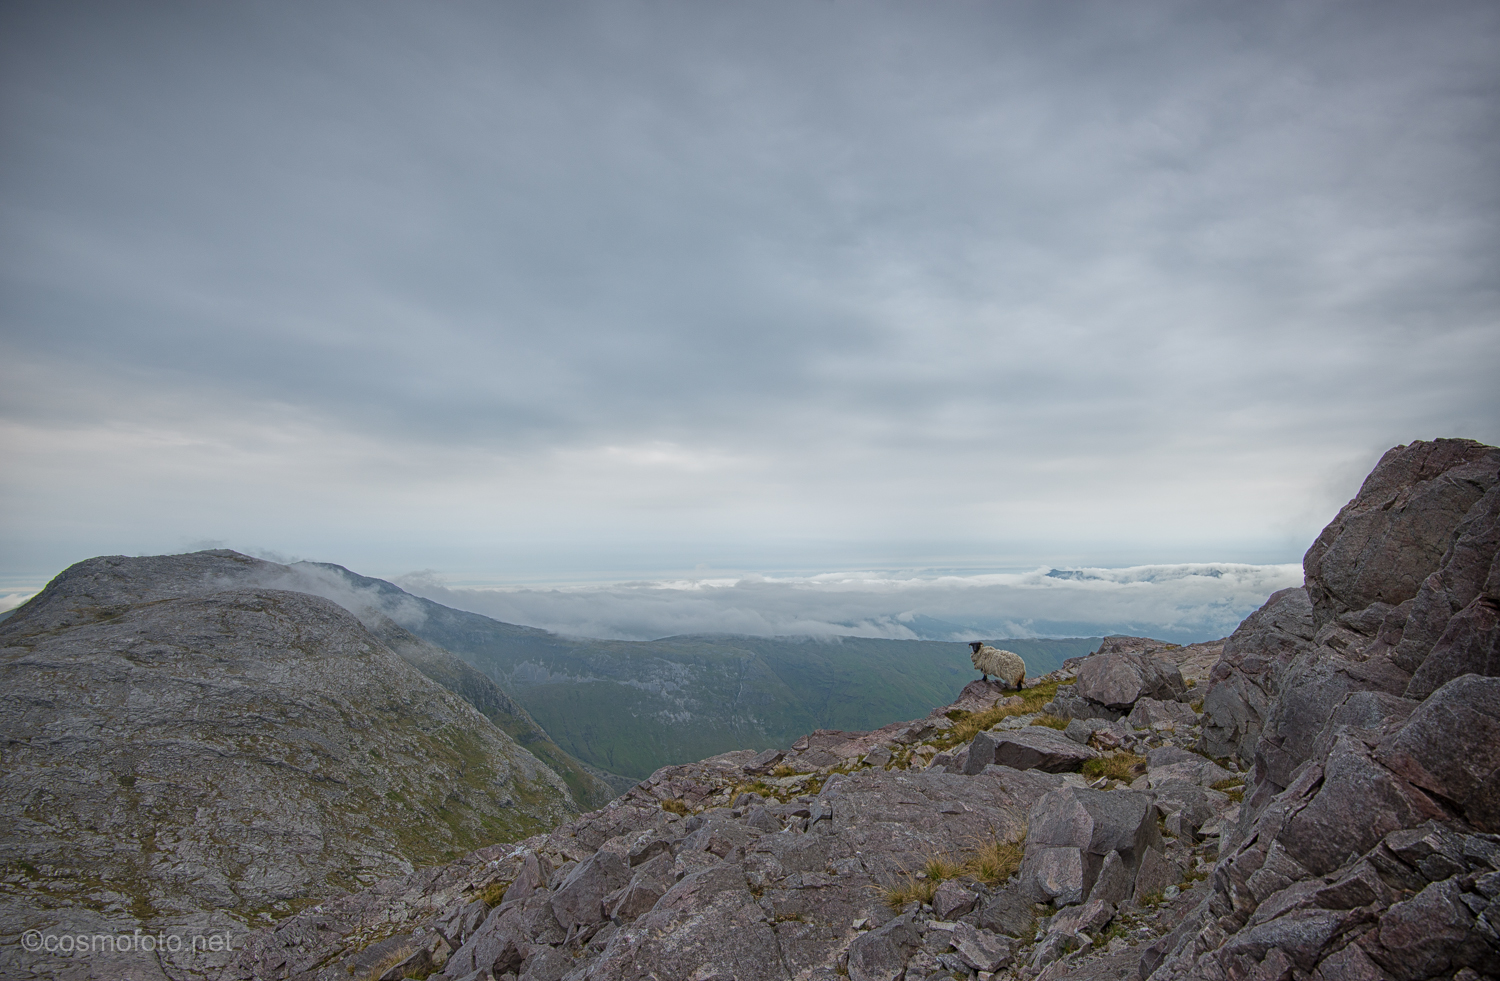 A lonely sheep halfway up the mountain